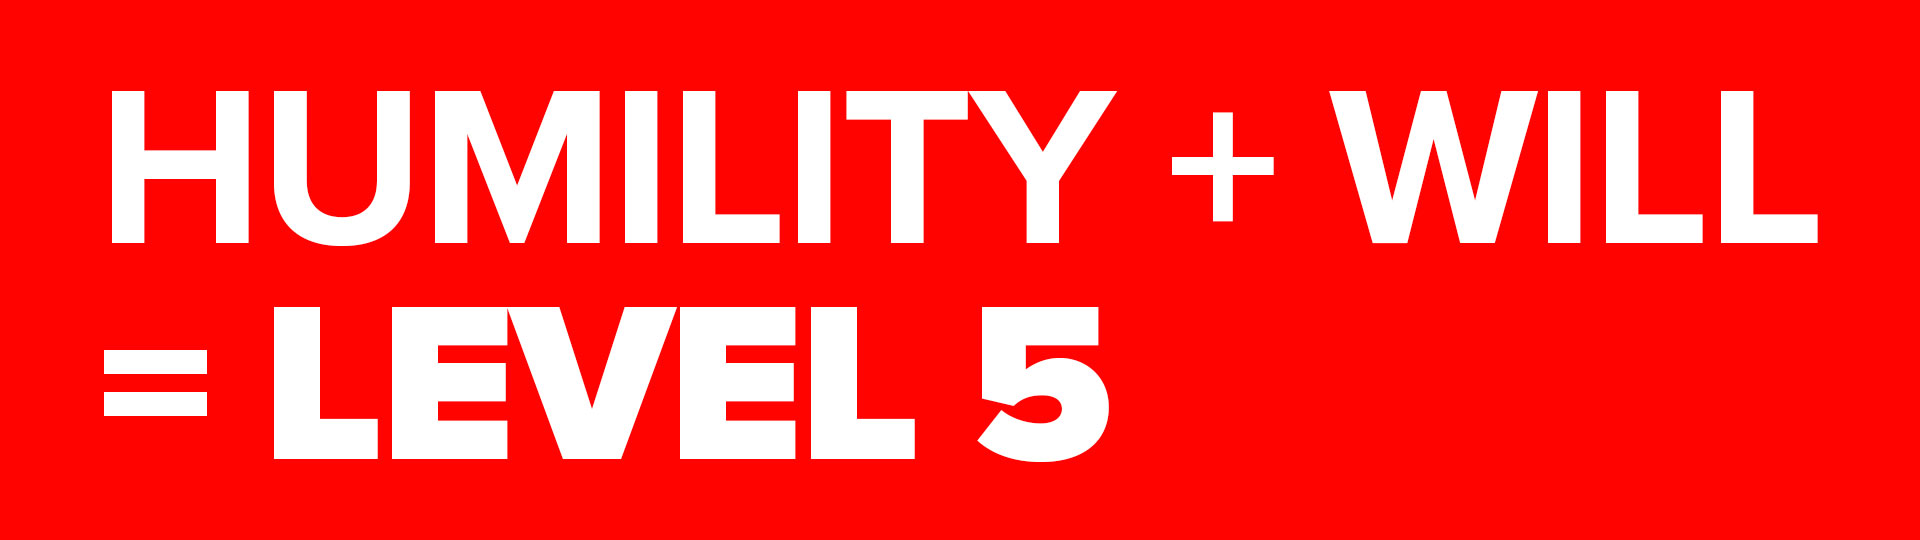 Level 5 Leadership Humility And Will